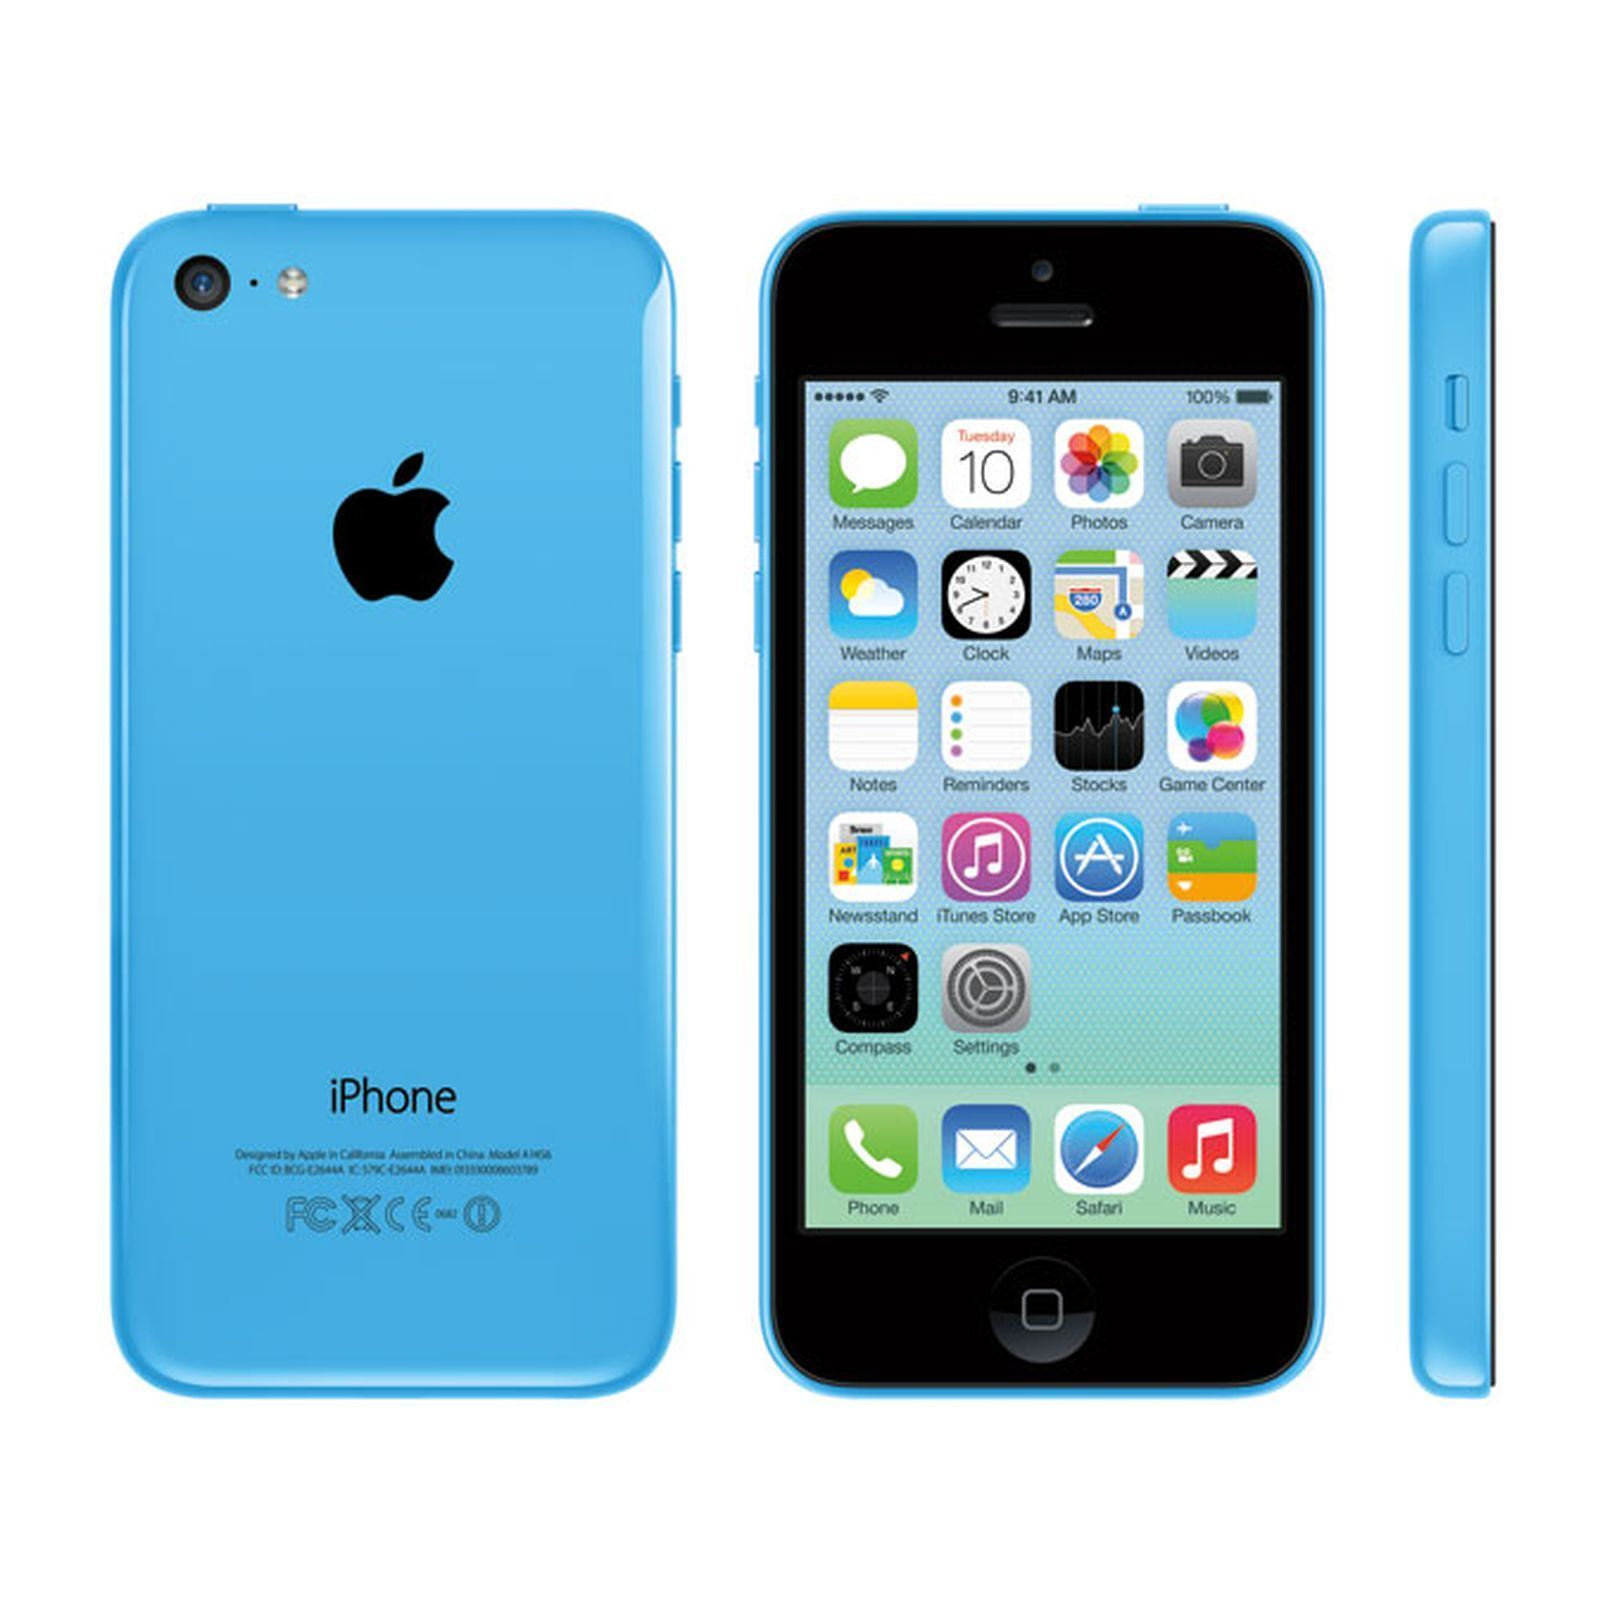 apple iphone 5c reconditionn 16 gb bleu clair brandalley. Black Bedroom Furniture Sets. Home Design Ideas